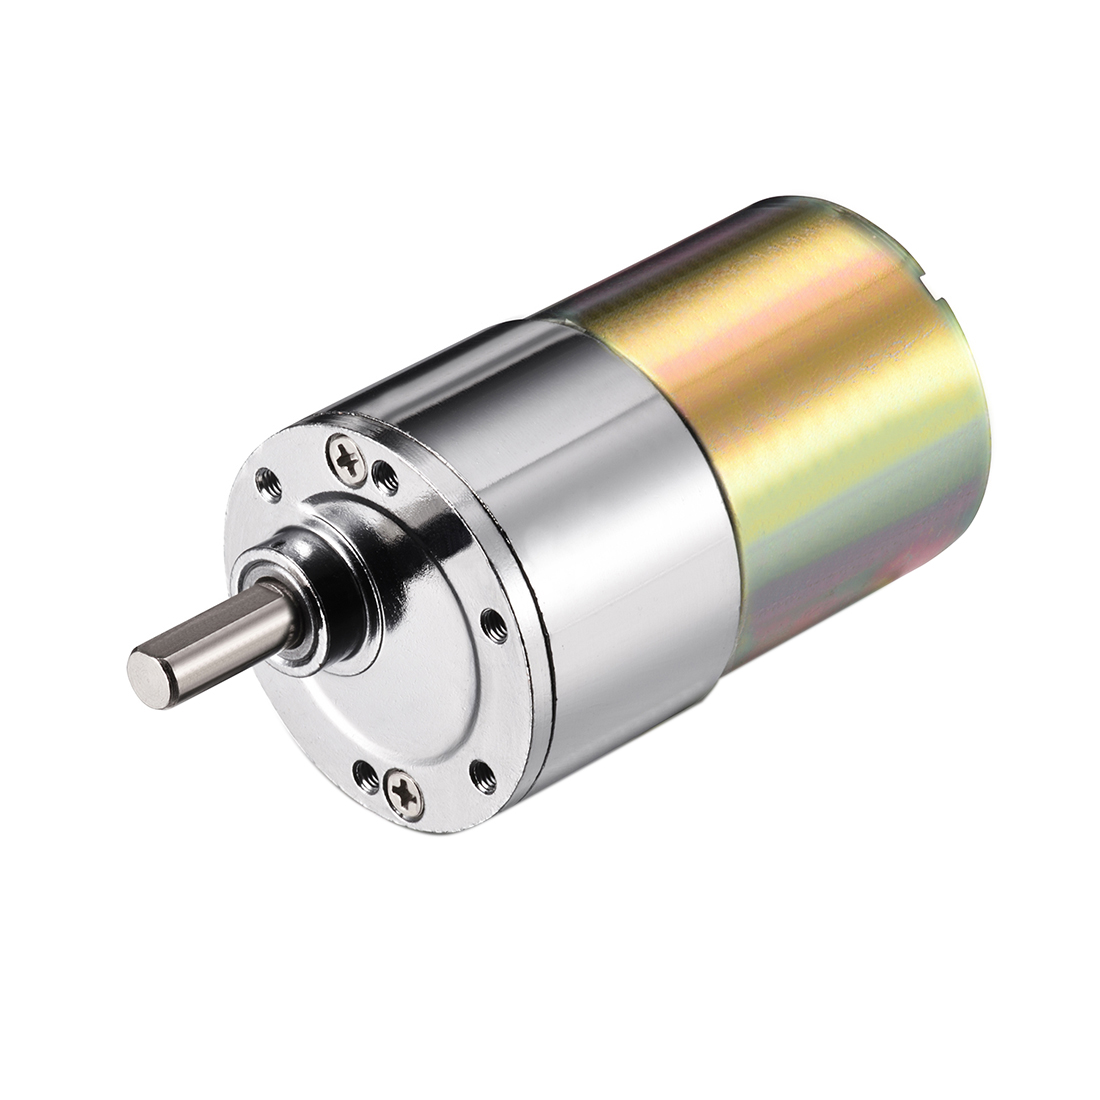 DC 12V 87RPM Micro Gear Box Motor Speed Reduction Electric Gearbox Eccentric Output Shaft